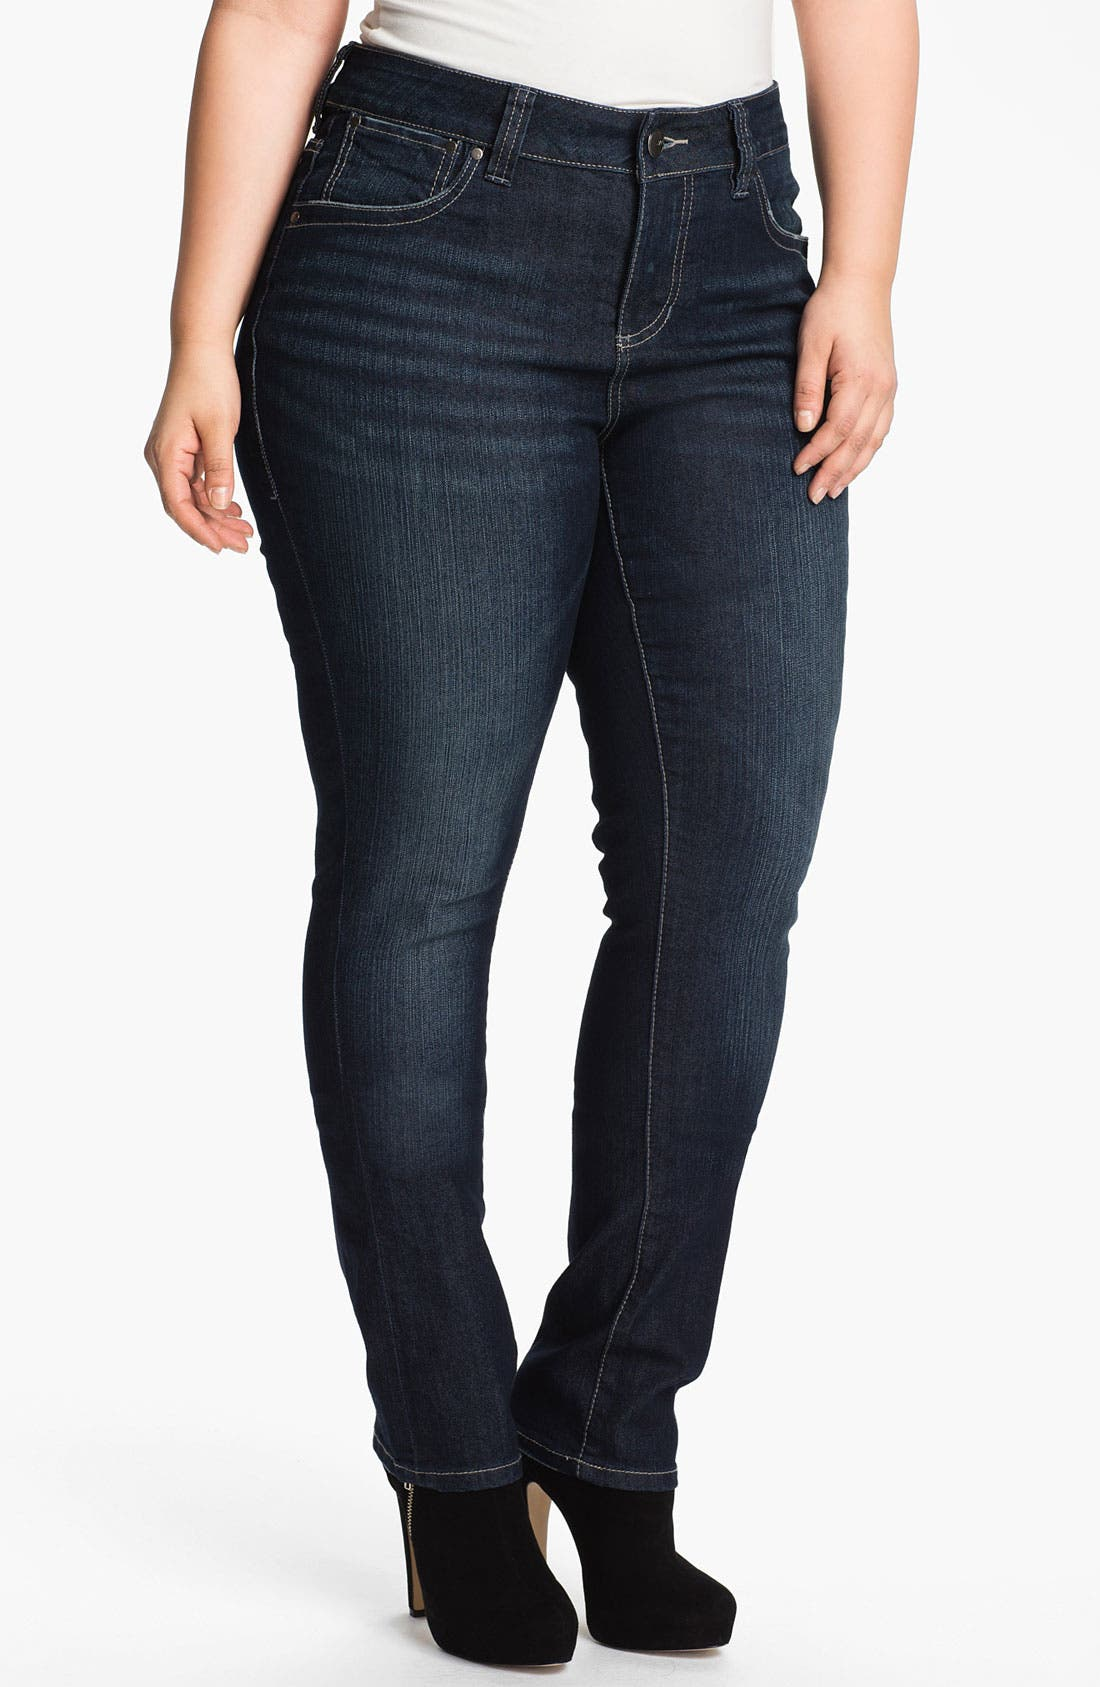 Main Image - Jag Jeans 'Bevin' Slim Stretch Jeans (Plus Size)